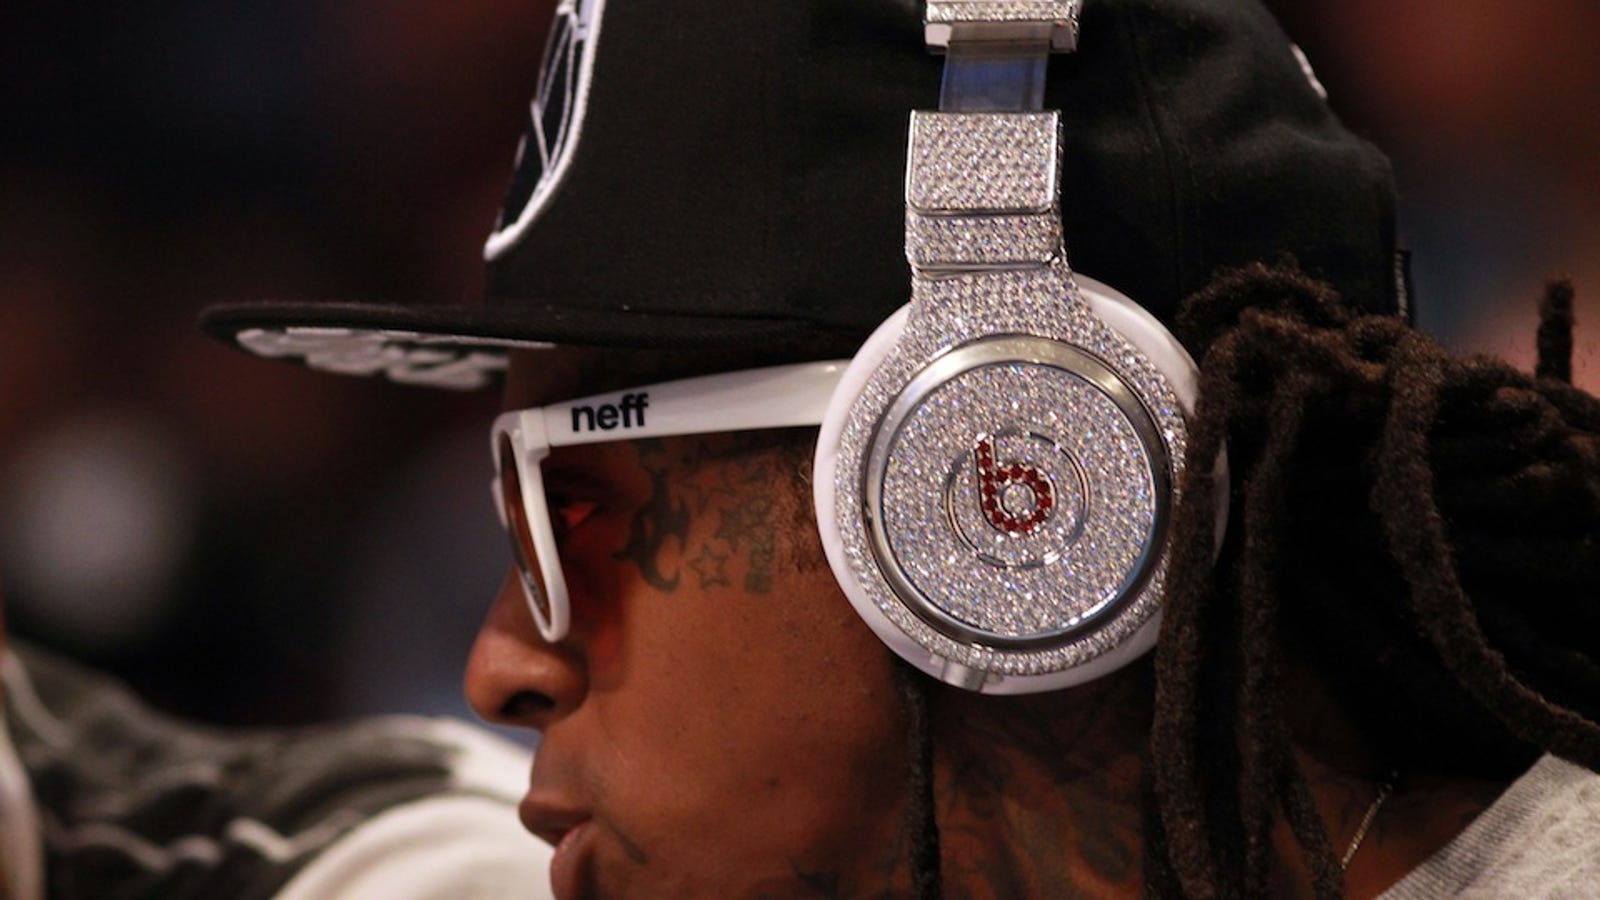 headphone bands for kids - Lil Wayne Wearing $1 Million Beats by Dre Headphones Is a Diamond Studded Mess